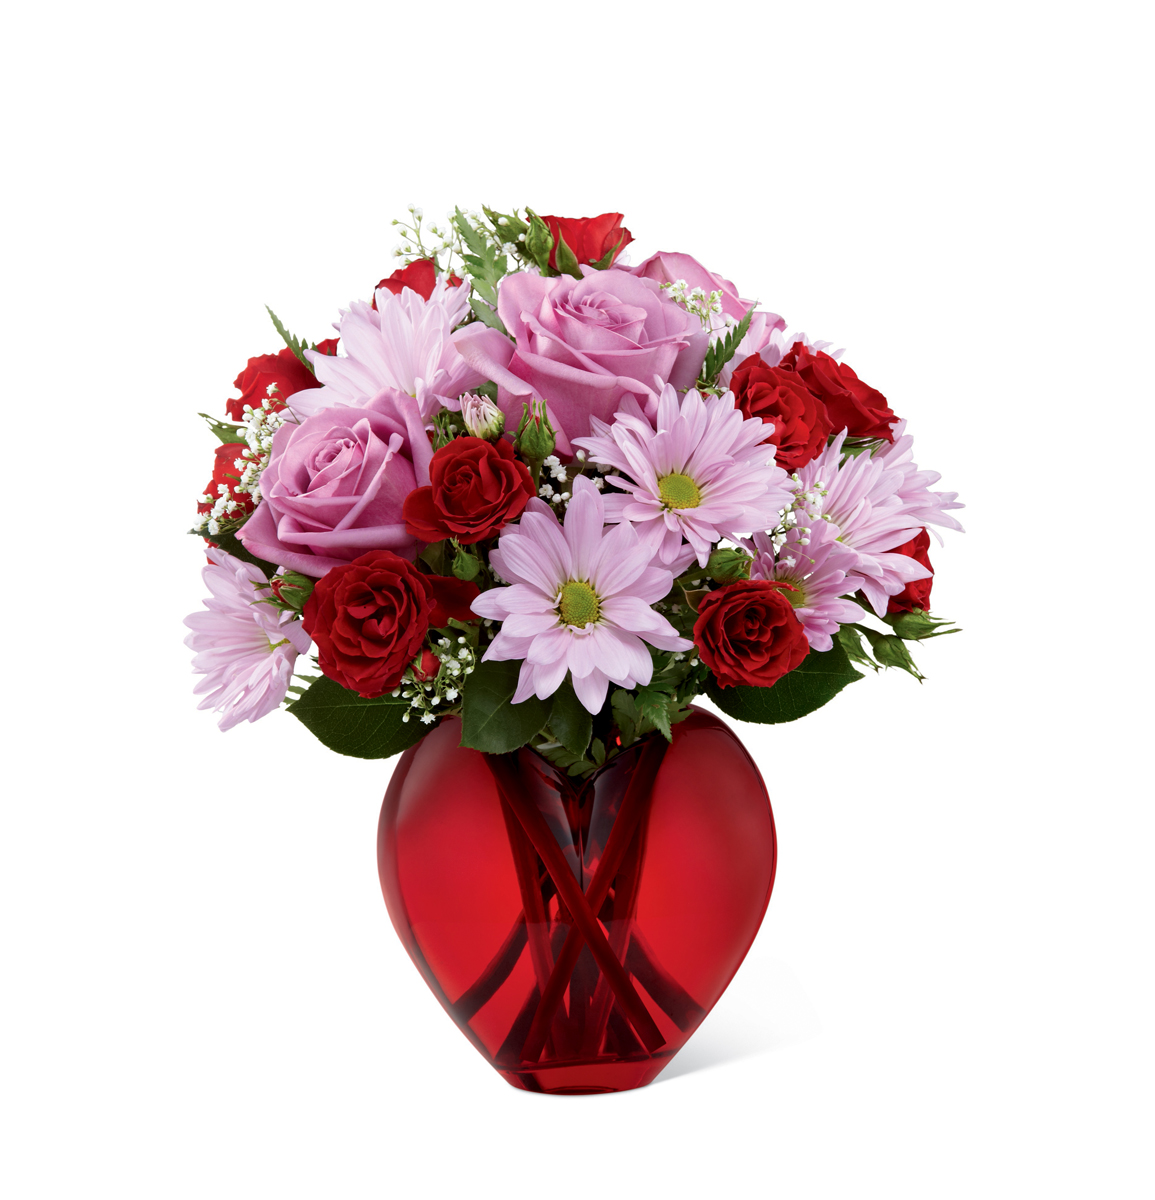 The Ftd All You Need Is Love B Altamonte Springs Fl Florist